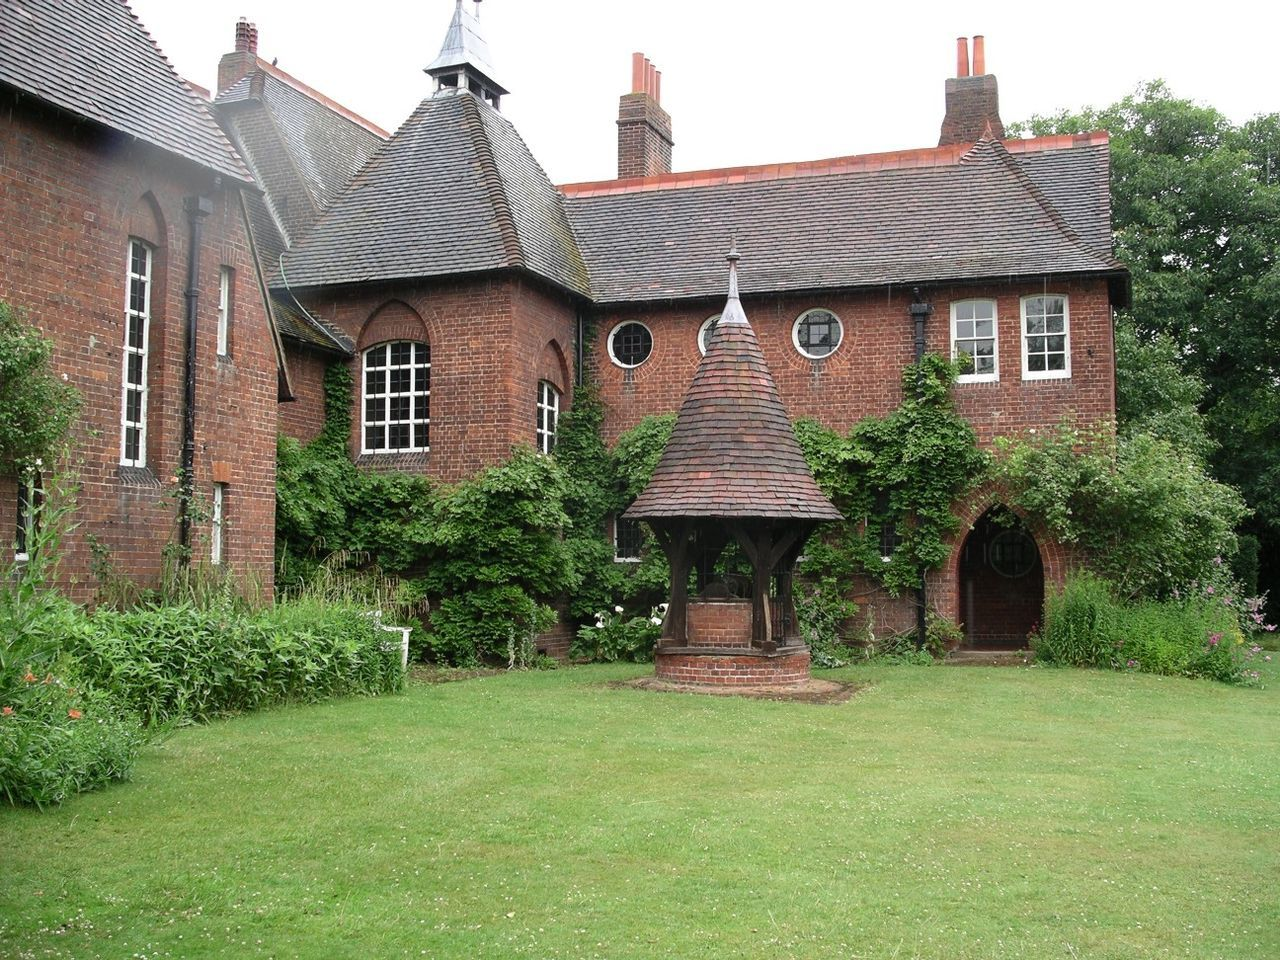 The Red House Bexleyheath Arts And Crafts Movement Wikipedia With Images Red House